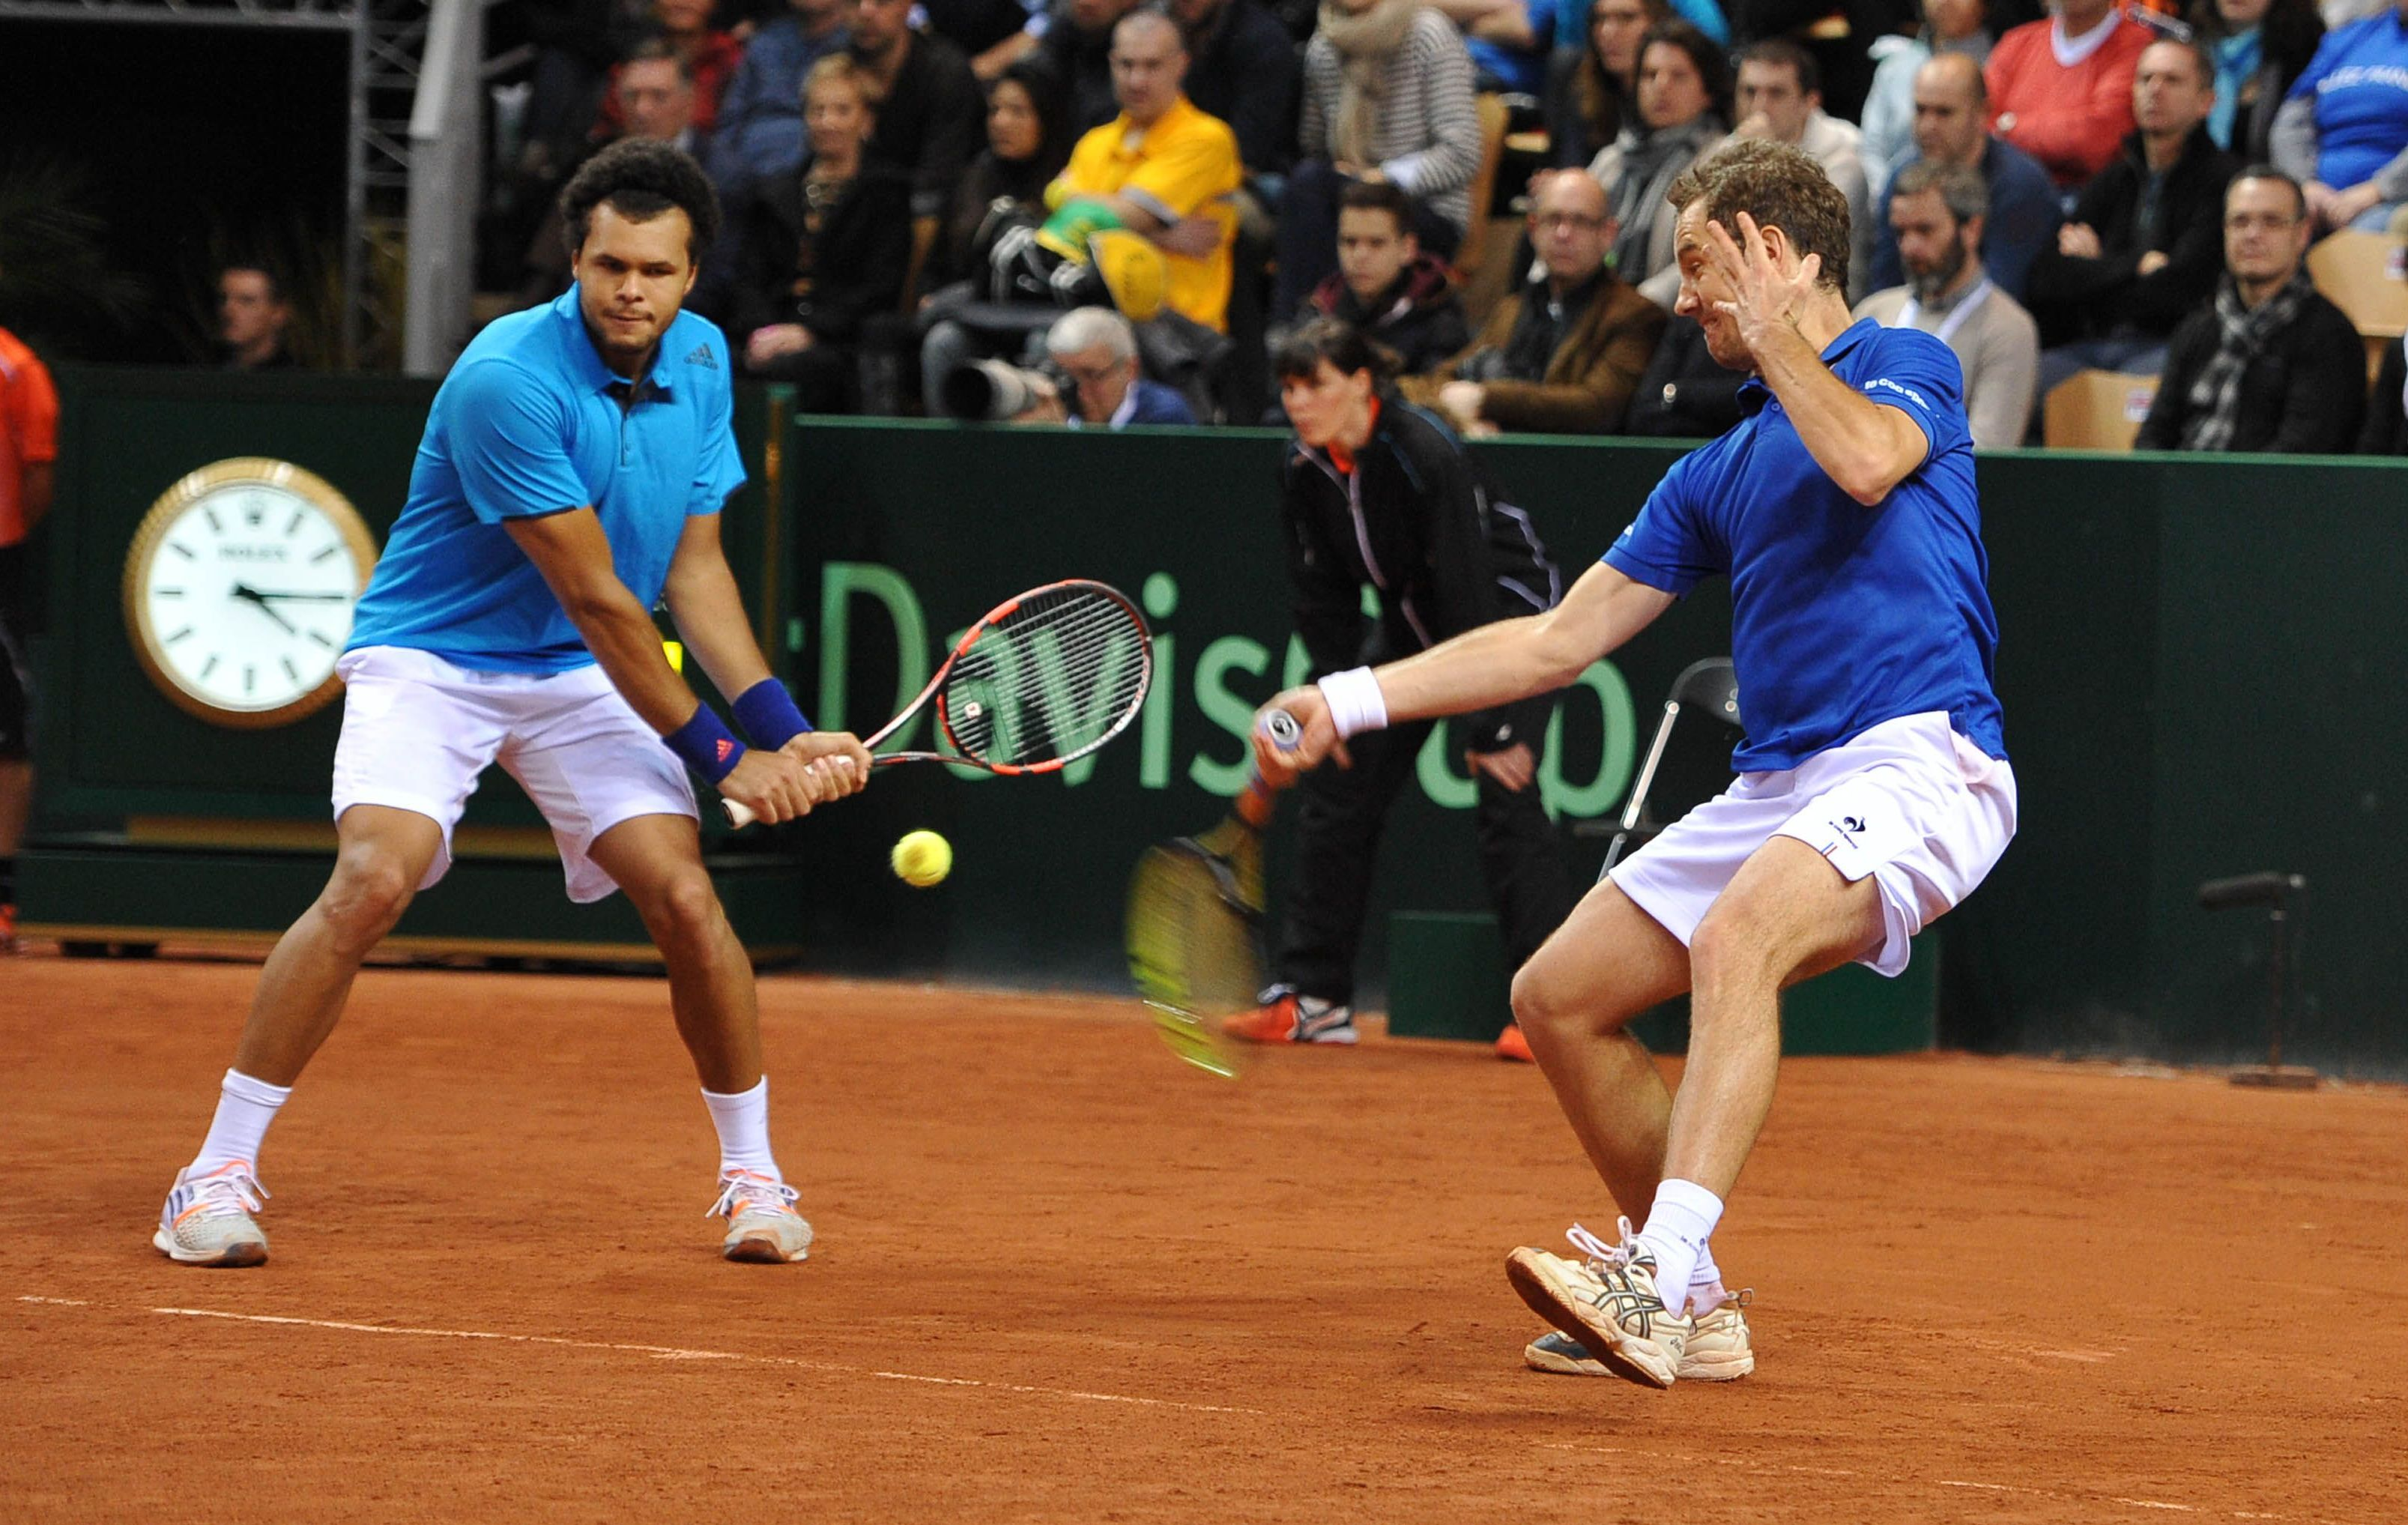 Tennis - Coupe Davis - La tentation Gasquet/Tsonga en double